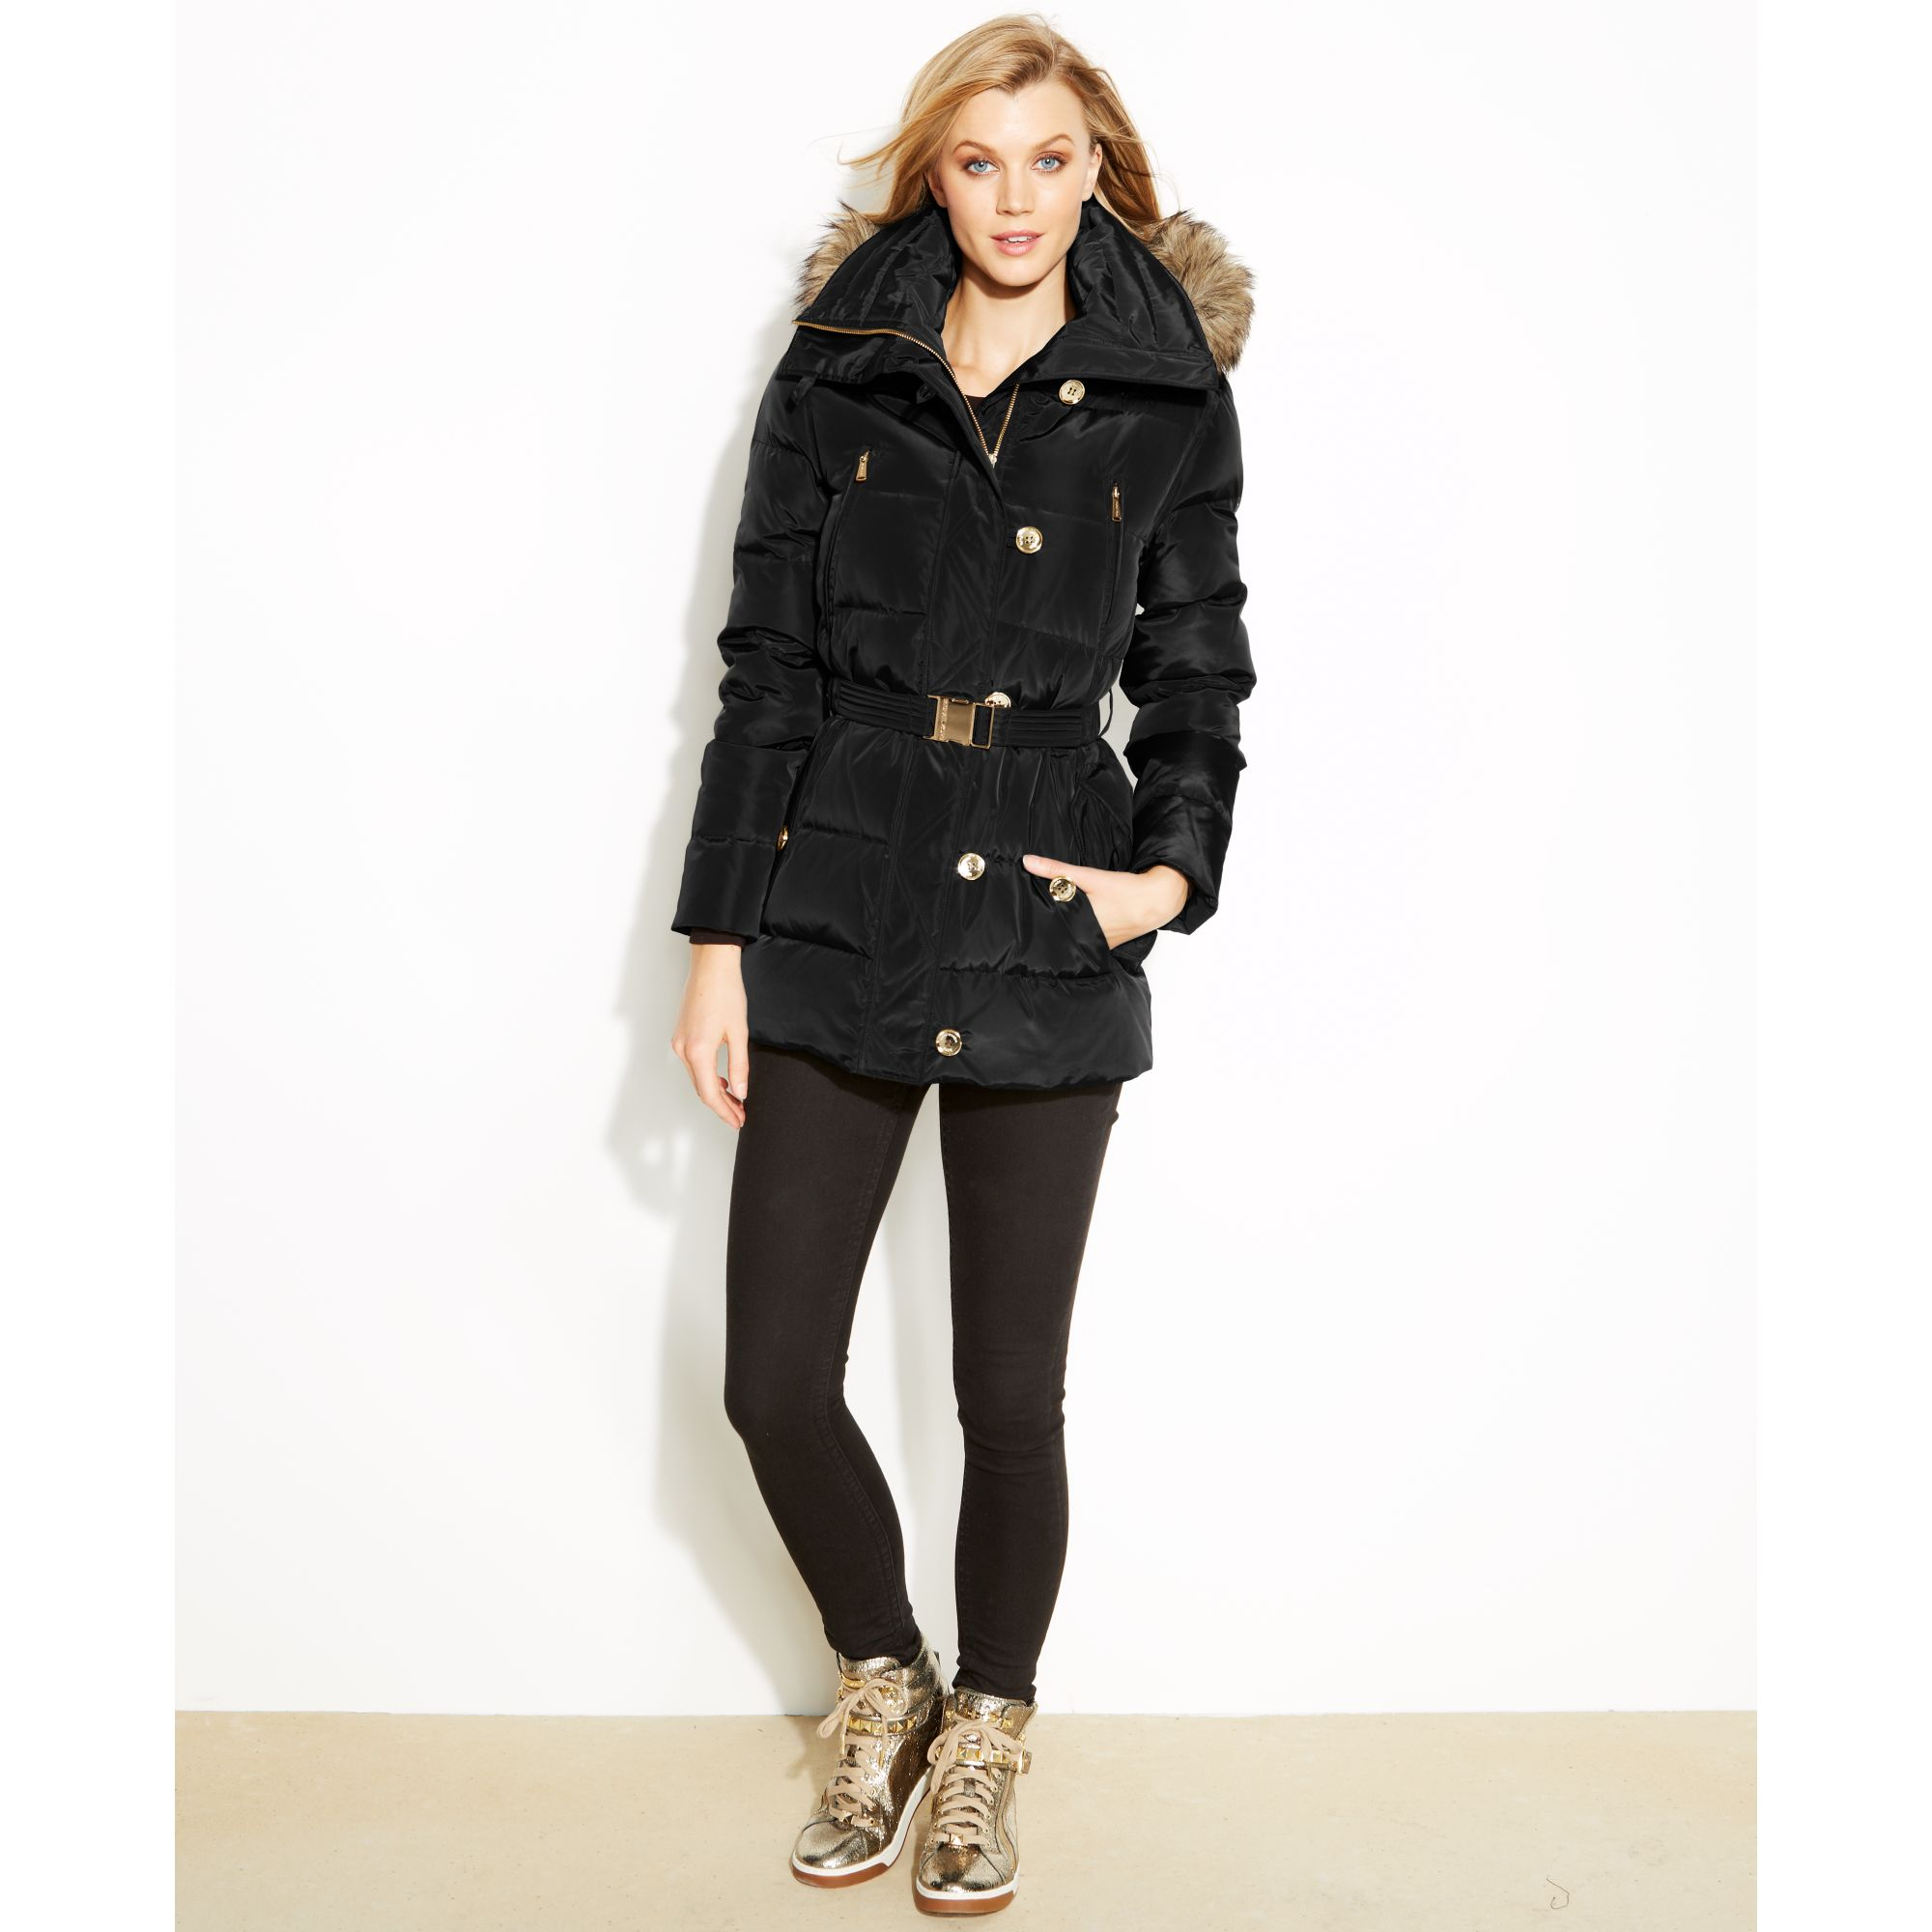 1c23ac16a6 Michael Kors Hooded Faux-furtrim Quilted Belted Puffer in Black - Lyst